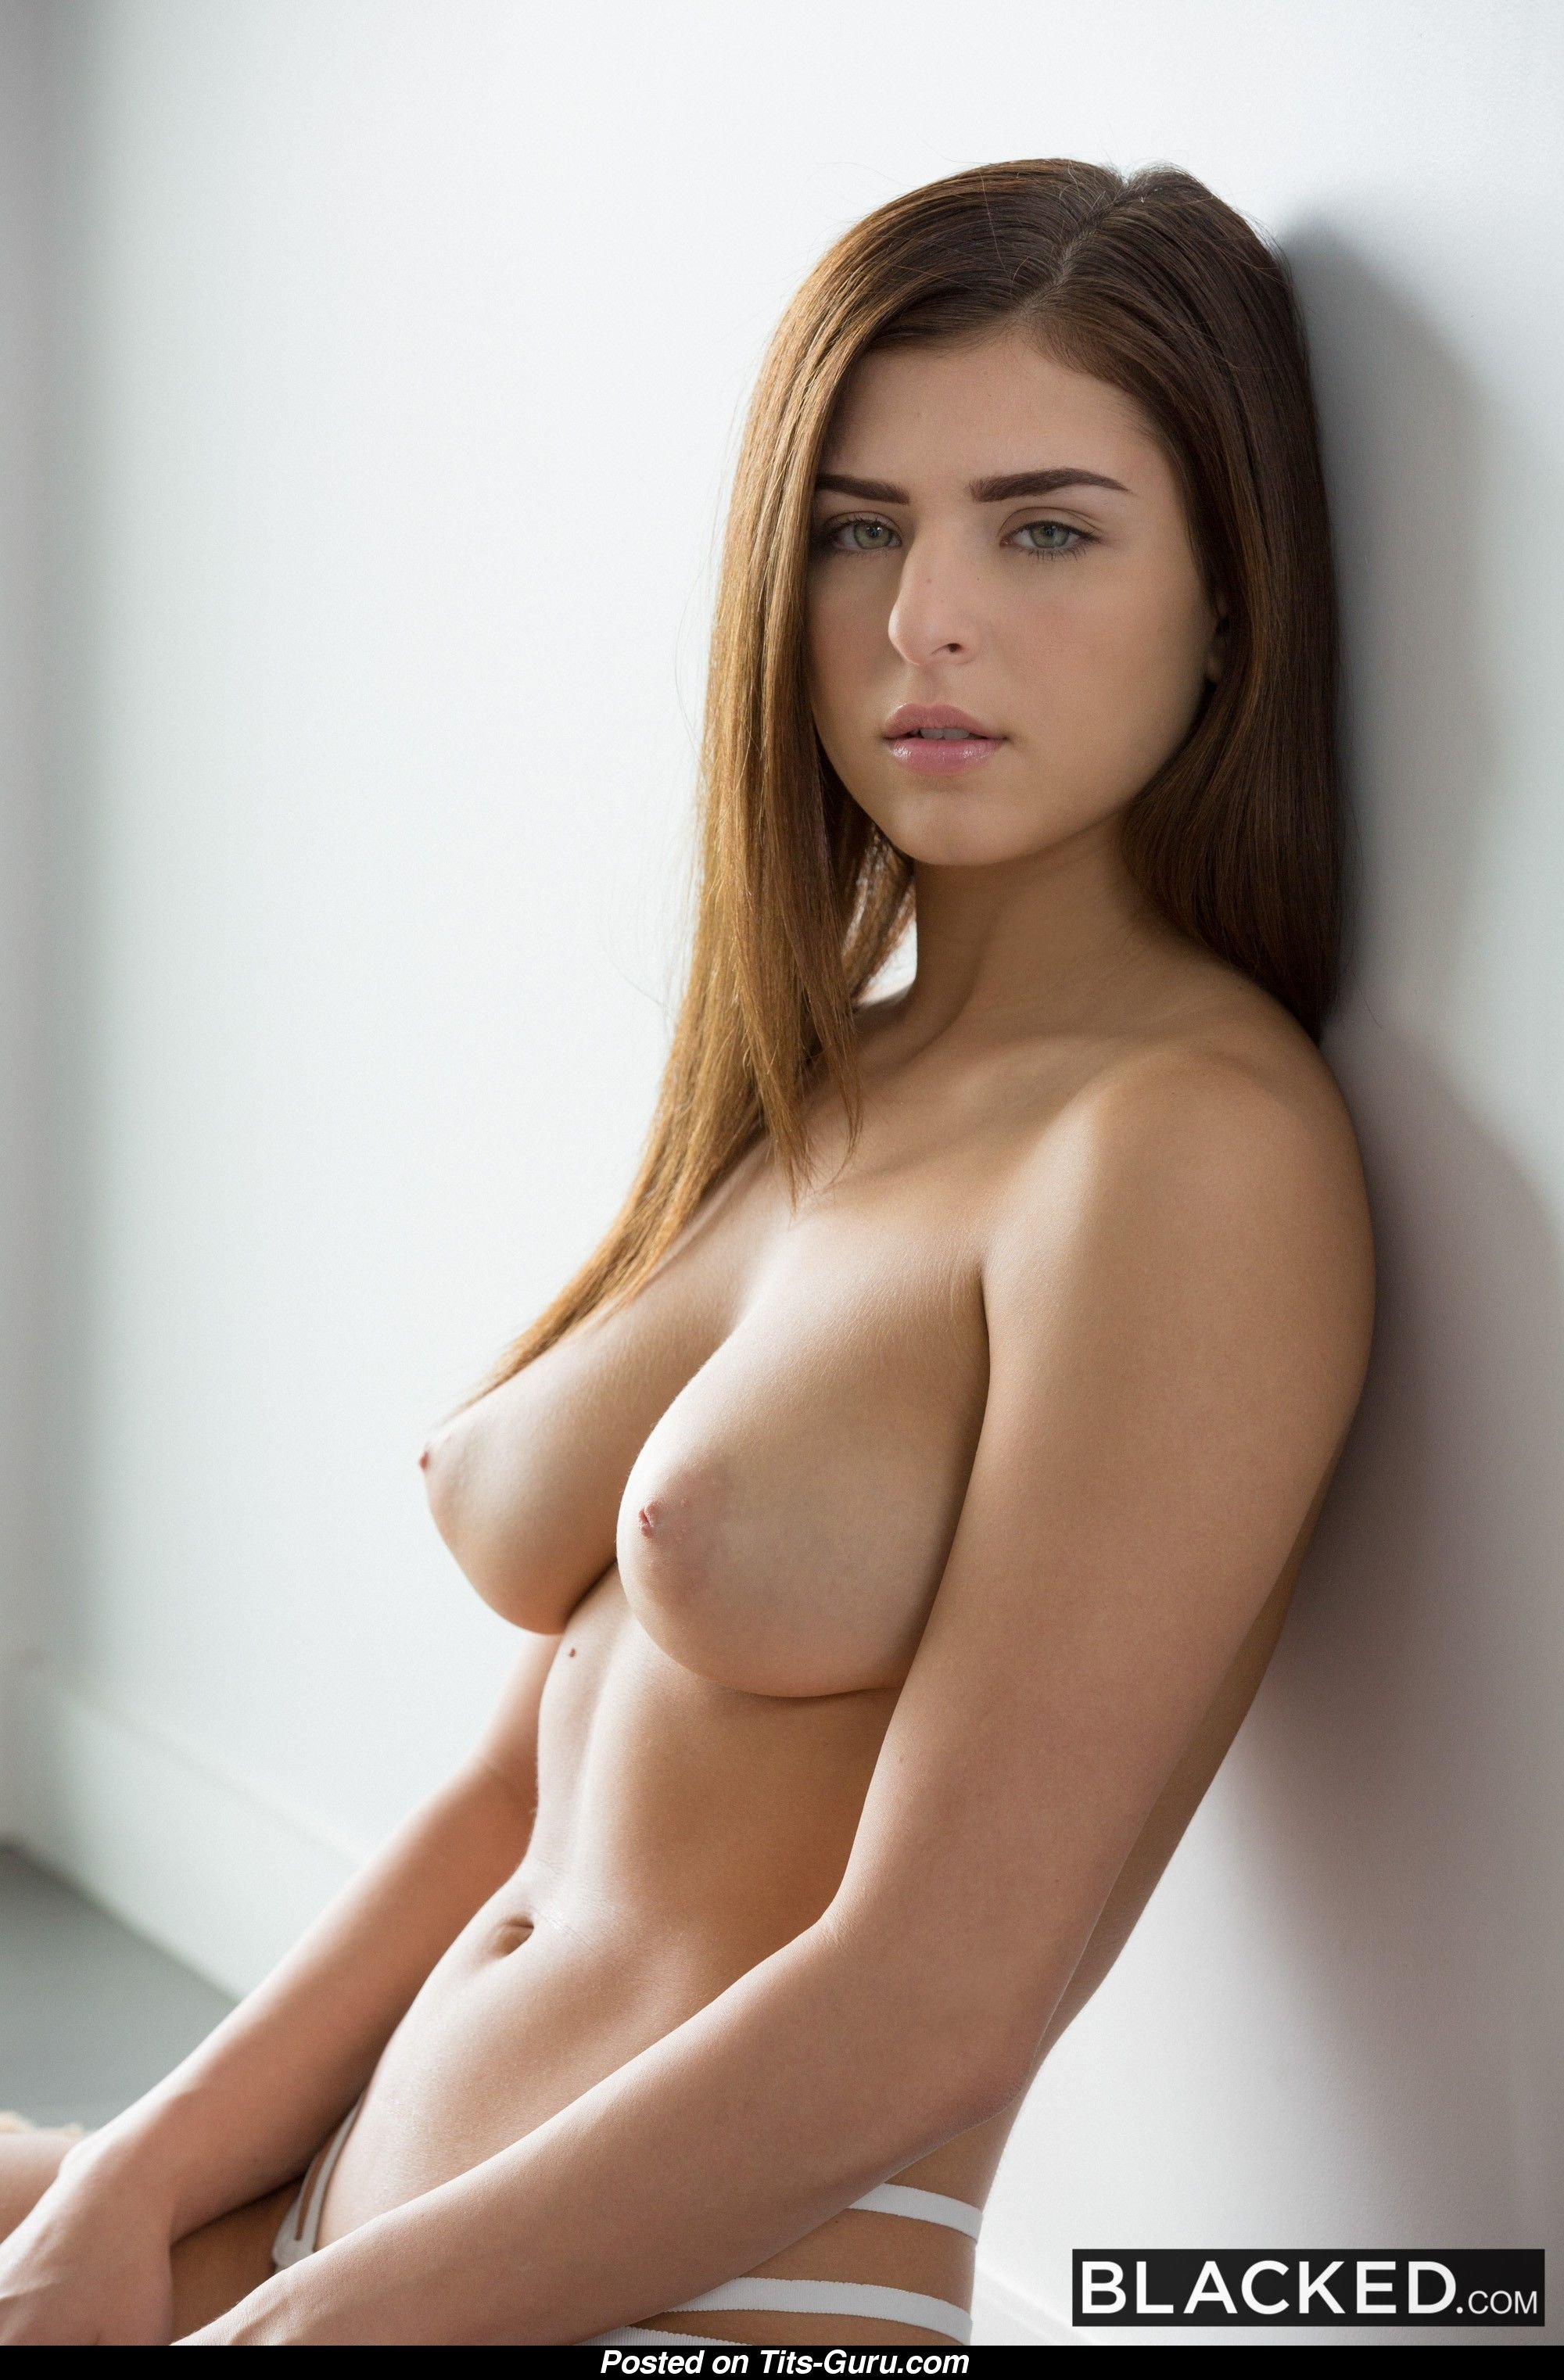 Leah Gotti Naked Amazing Girl With Medium Natural Boob Image-5598